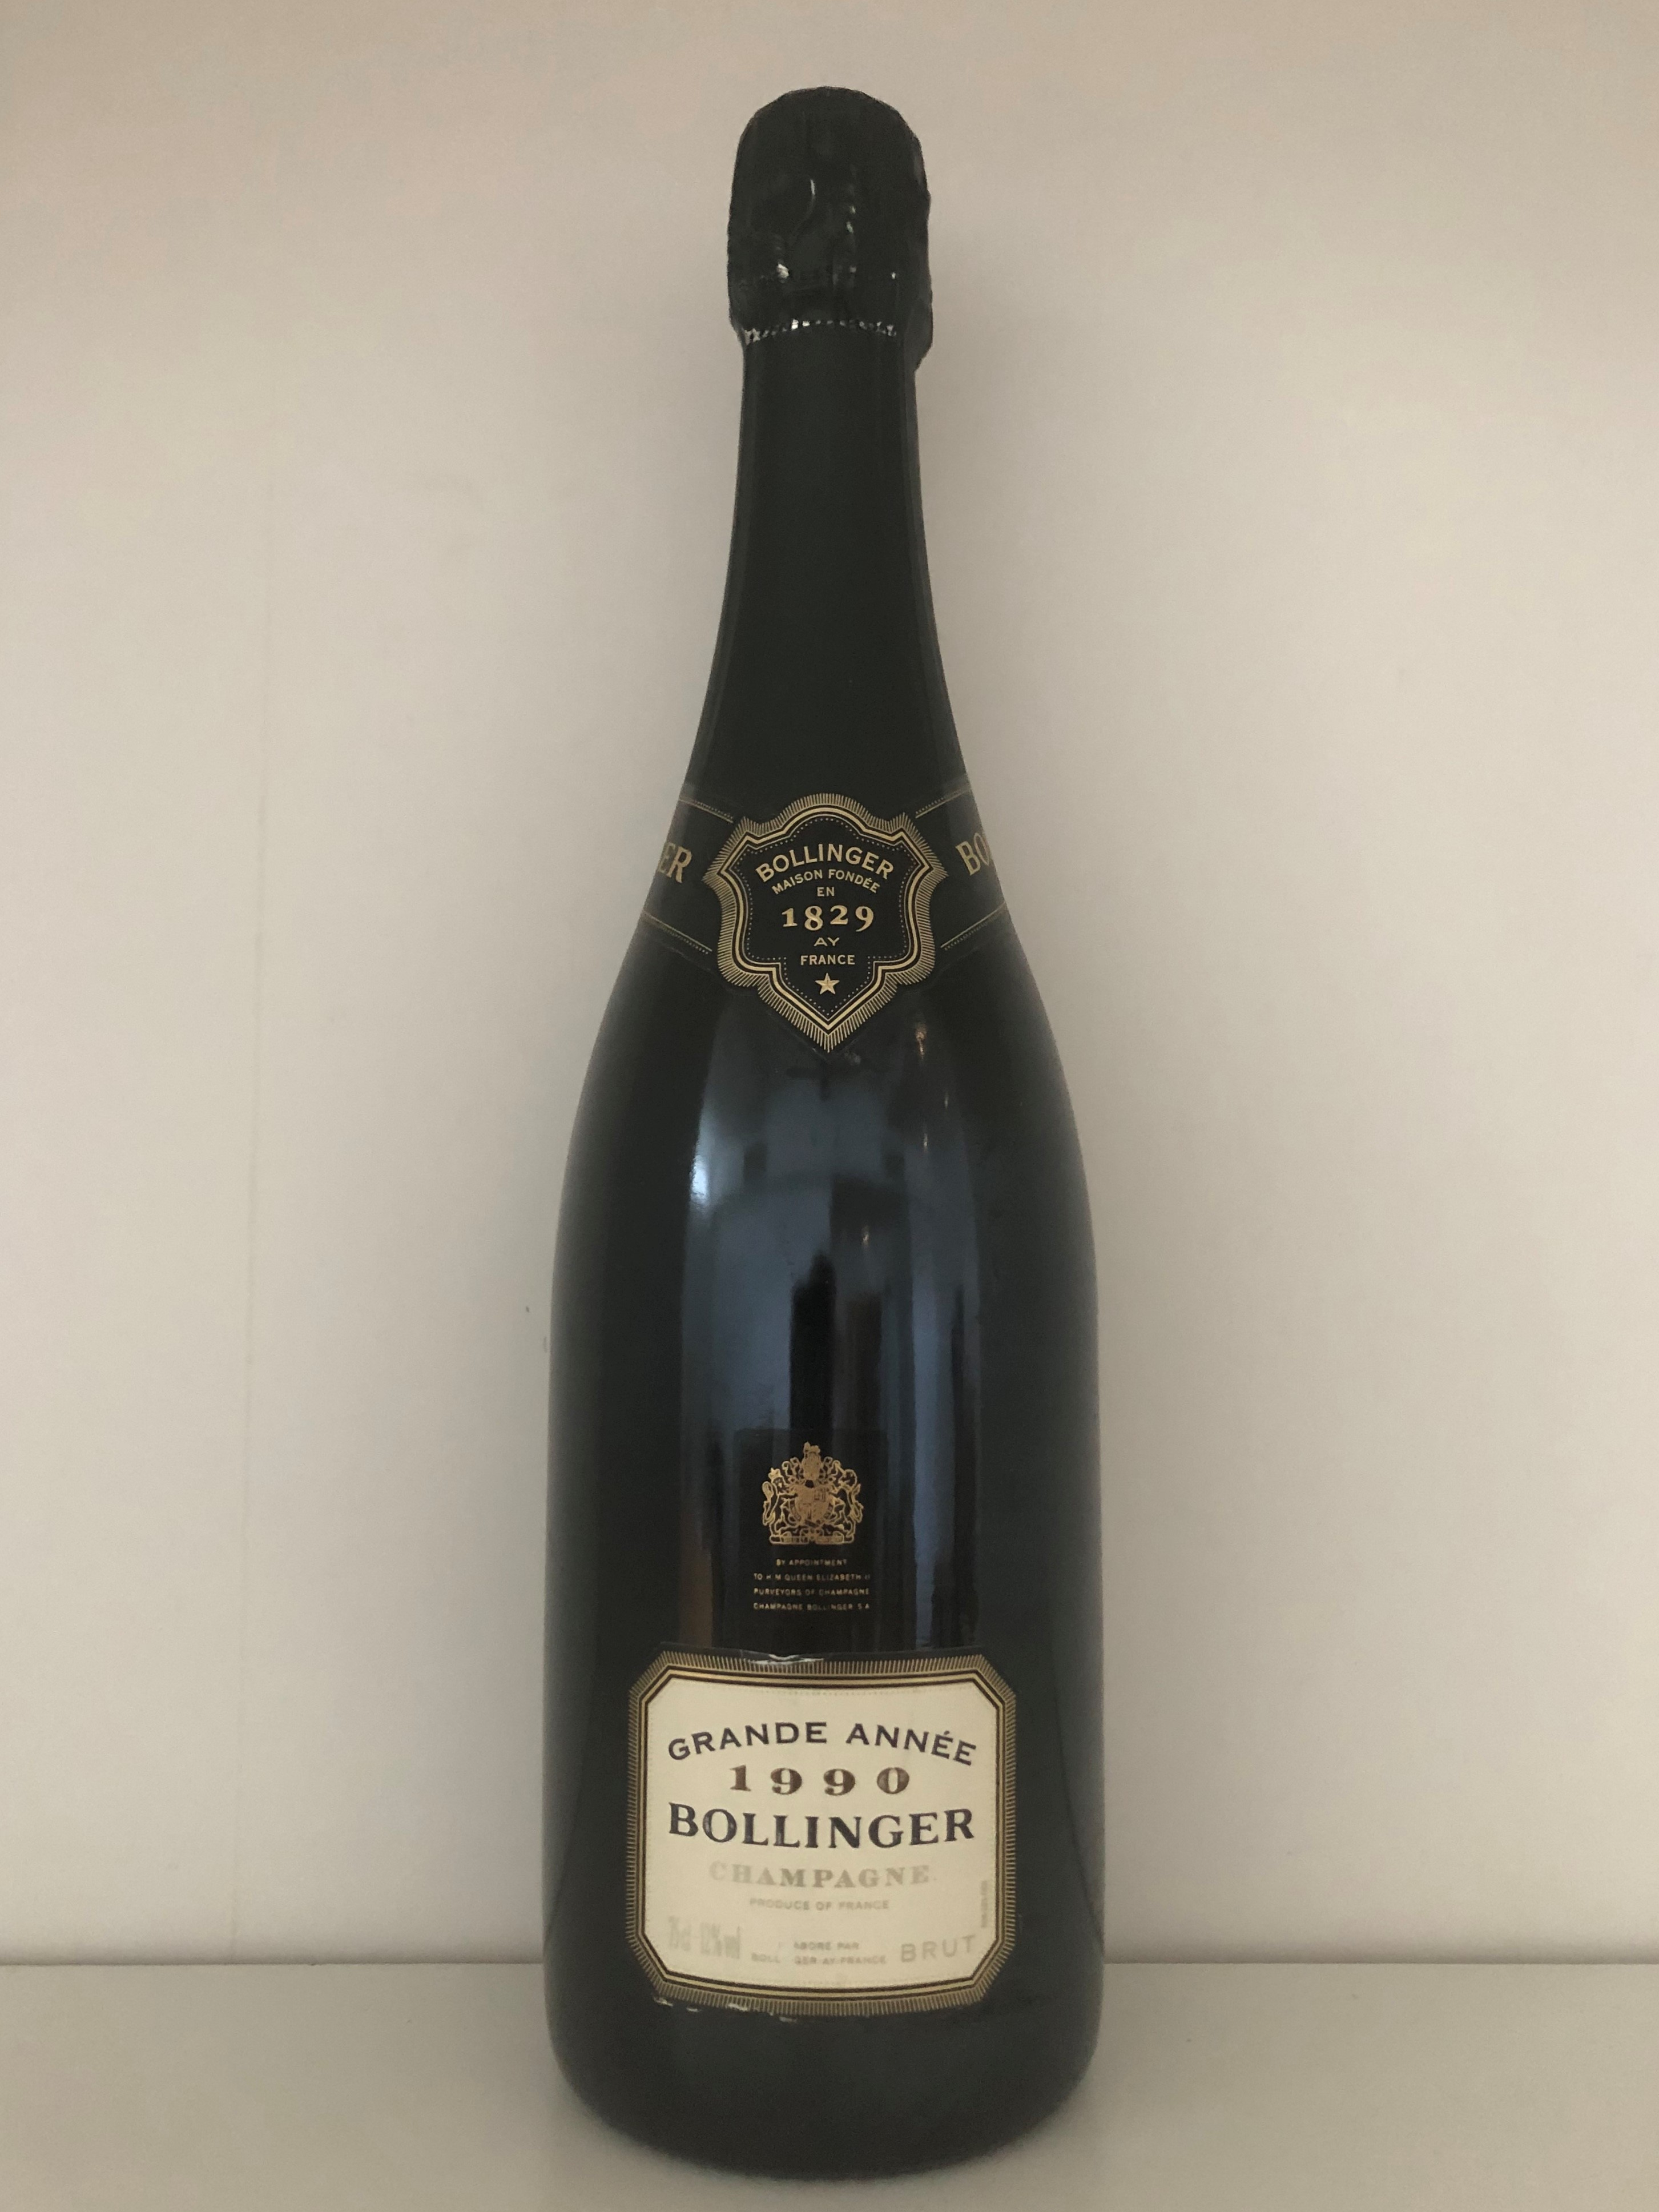 Lot 20 - 1990 Bollinger Grande Annee, Champagne, France, 1 bottle